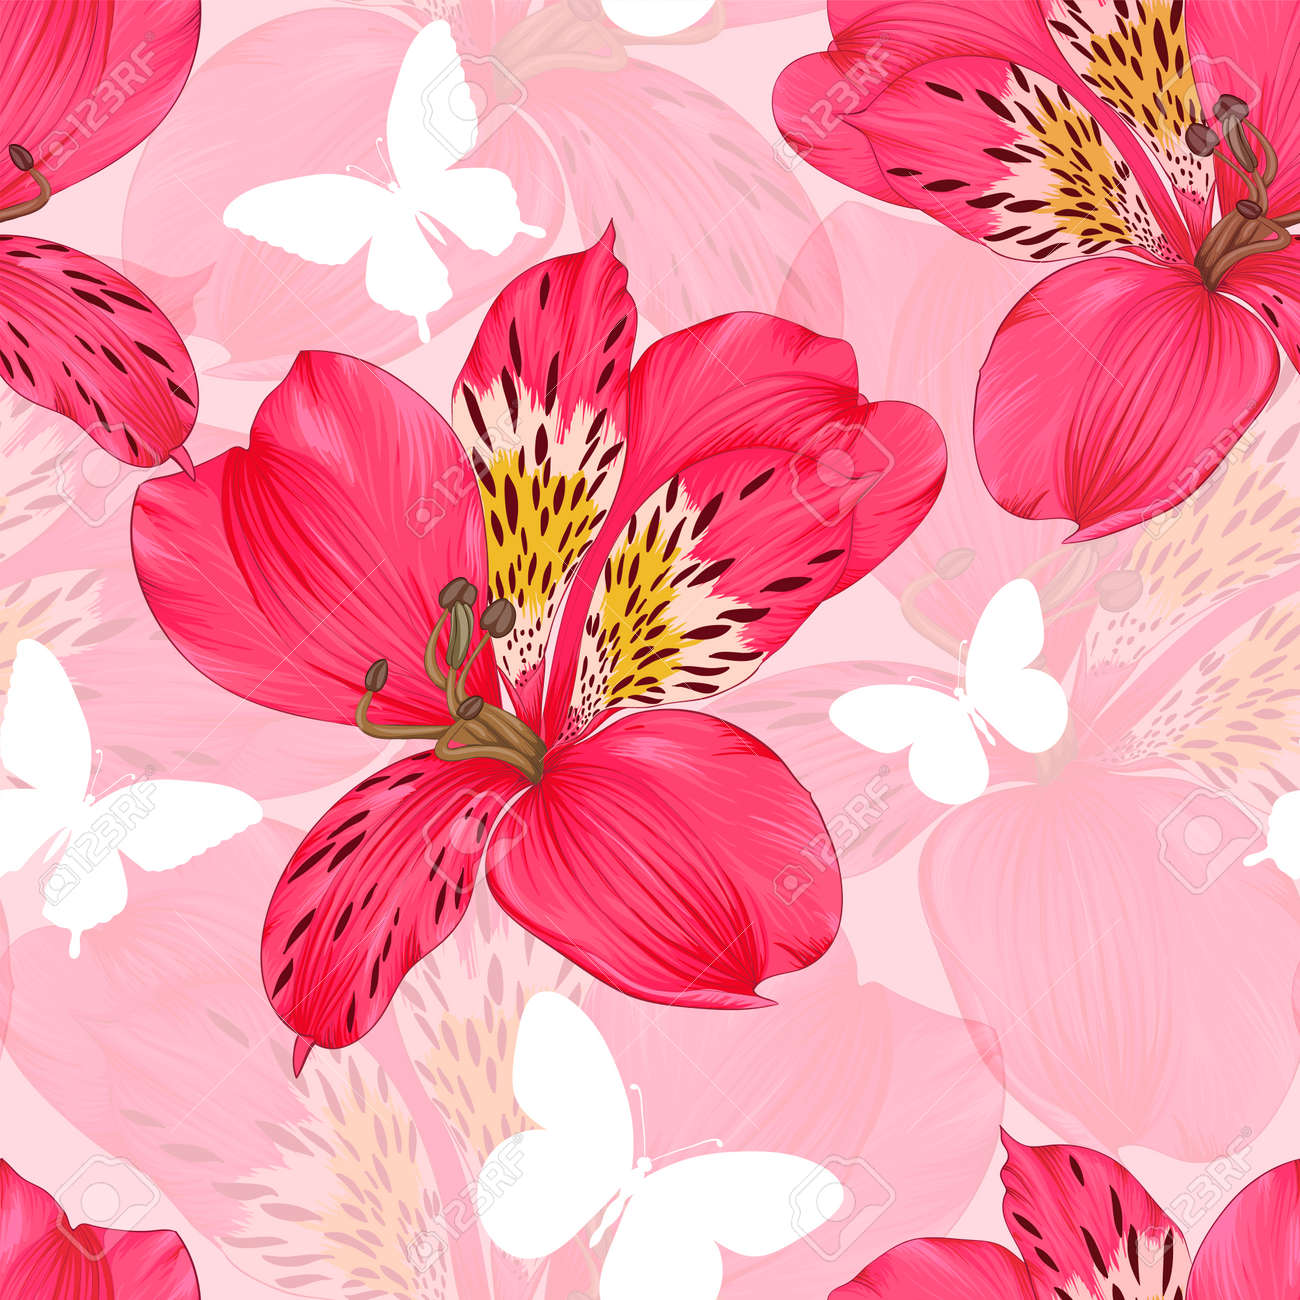 Beautiful seamless background with pink and red alstroemeria beautiful seamless background with pink and red alstroemeria flower design greeting card and invitation of mightylinksfo